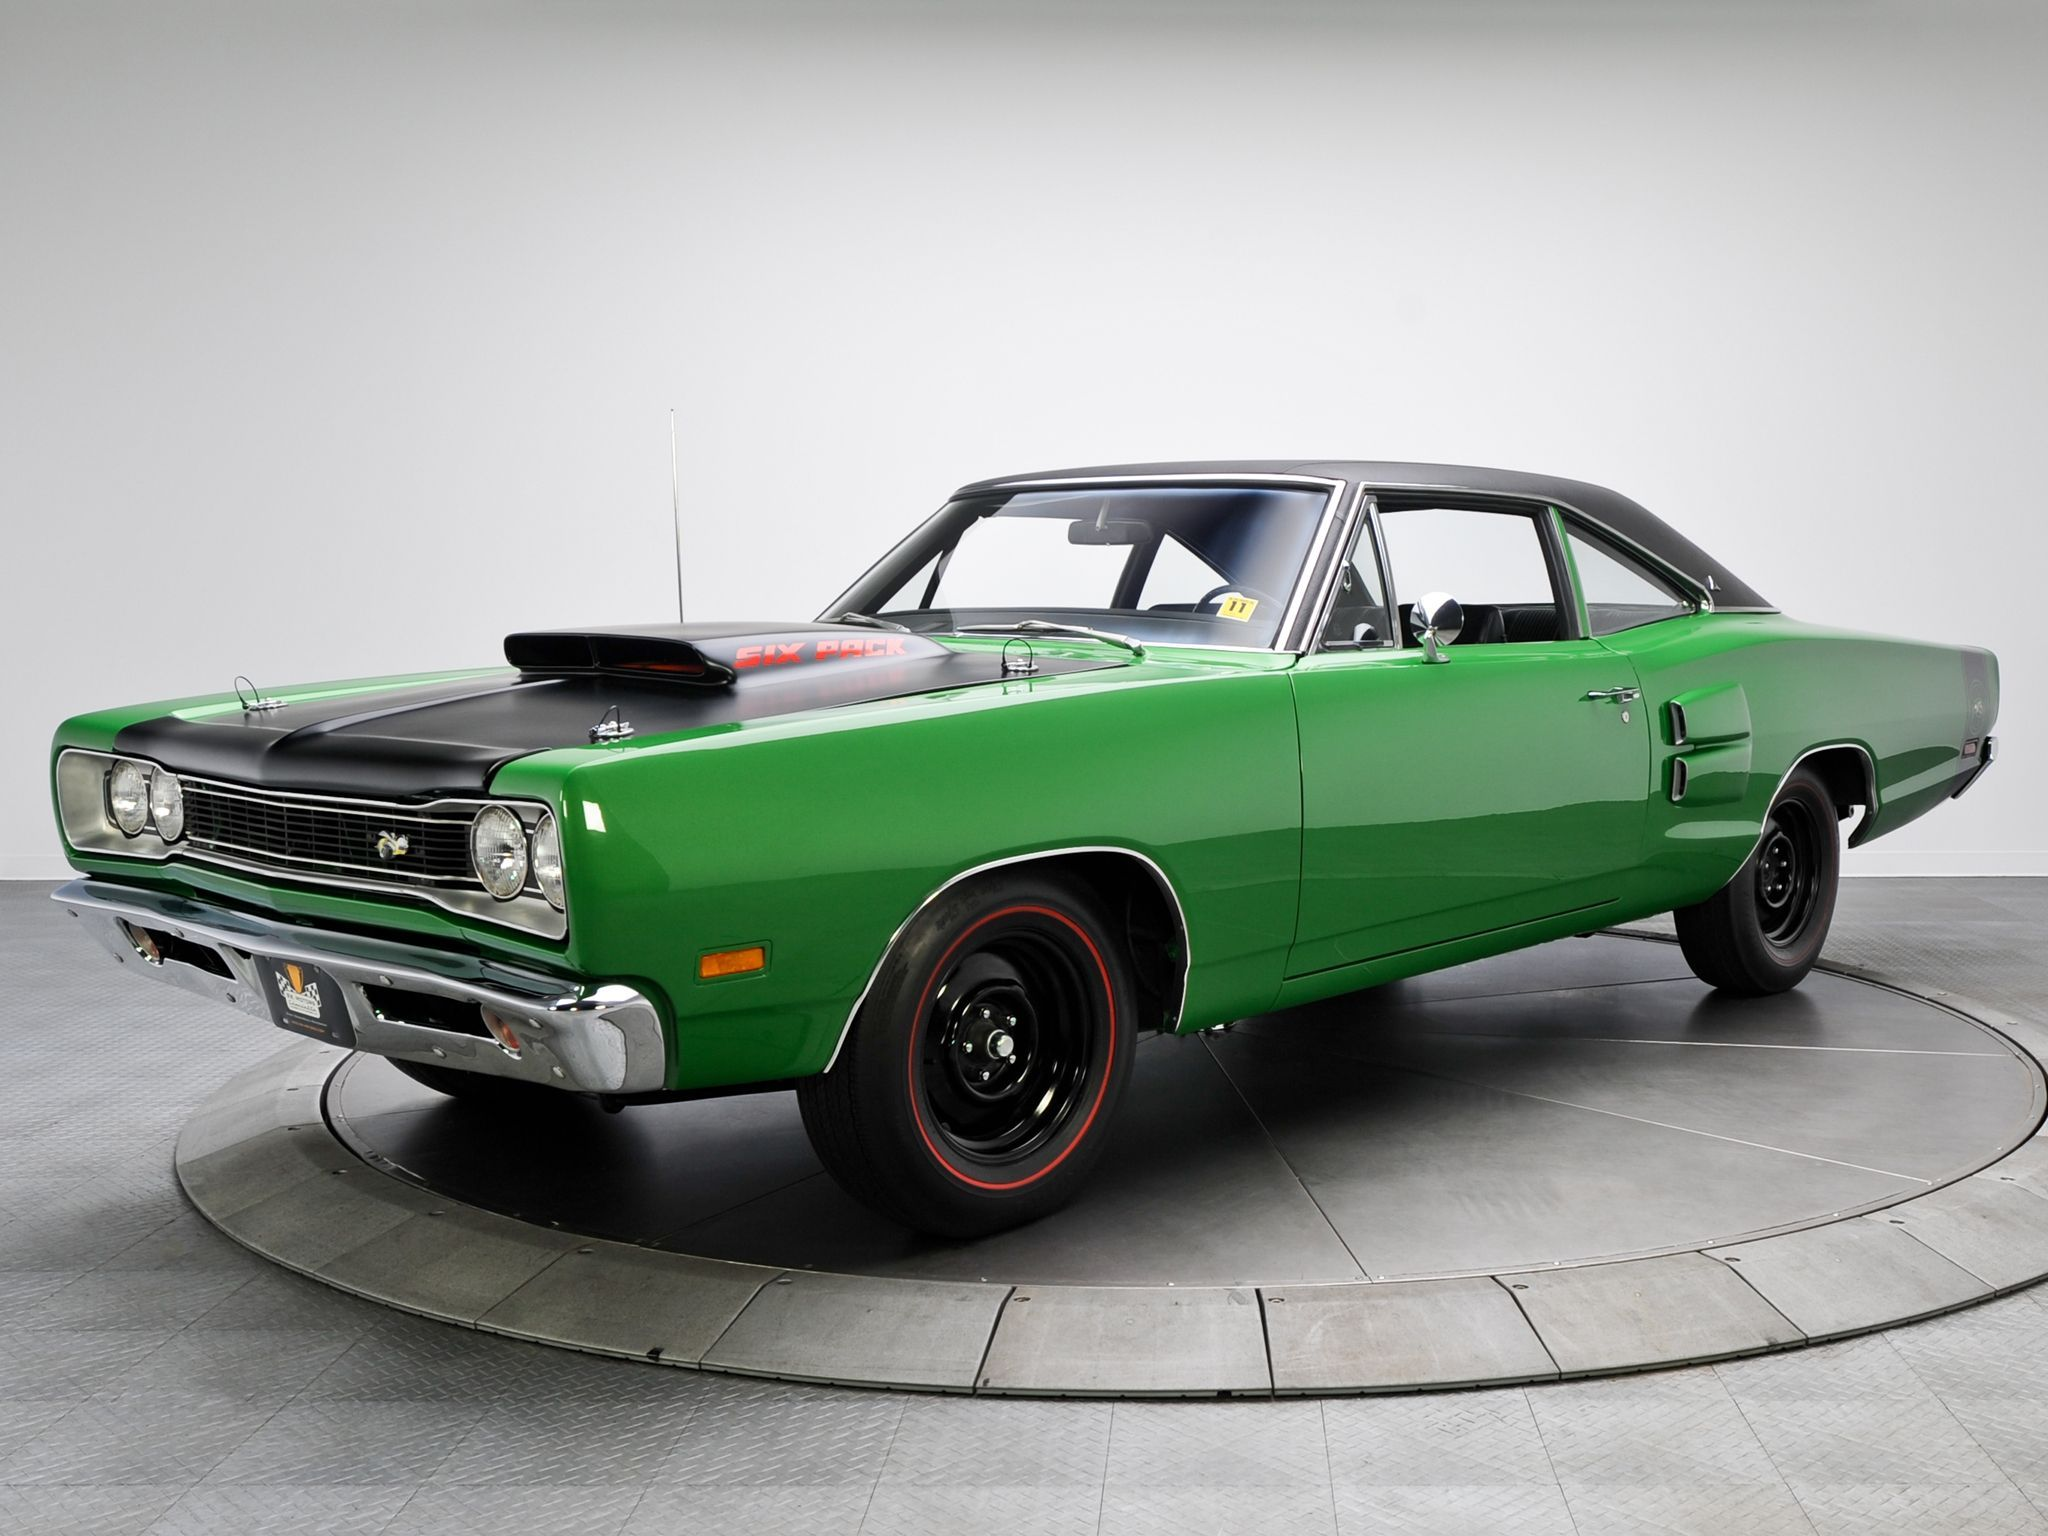 1969 Dodge Coronet Super Bee 440 Six Pack Dodge Charger Classic